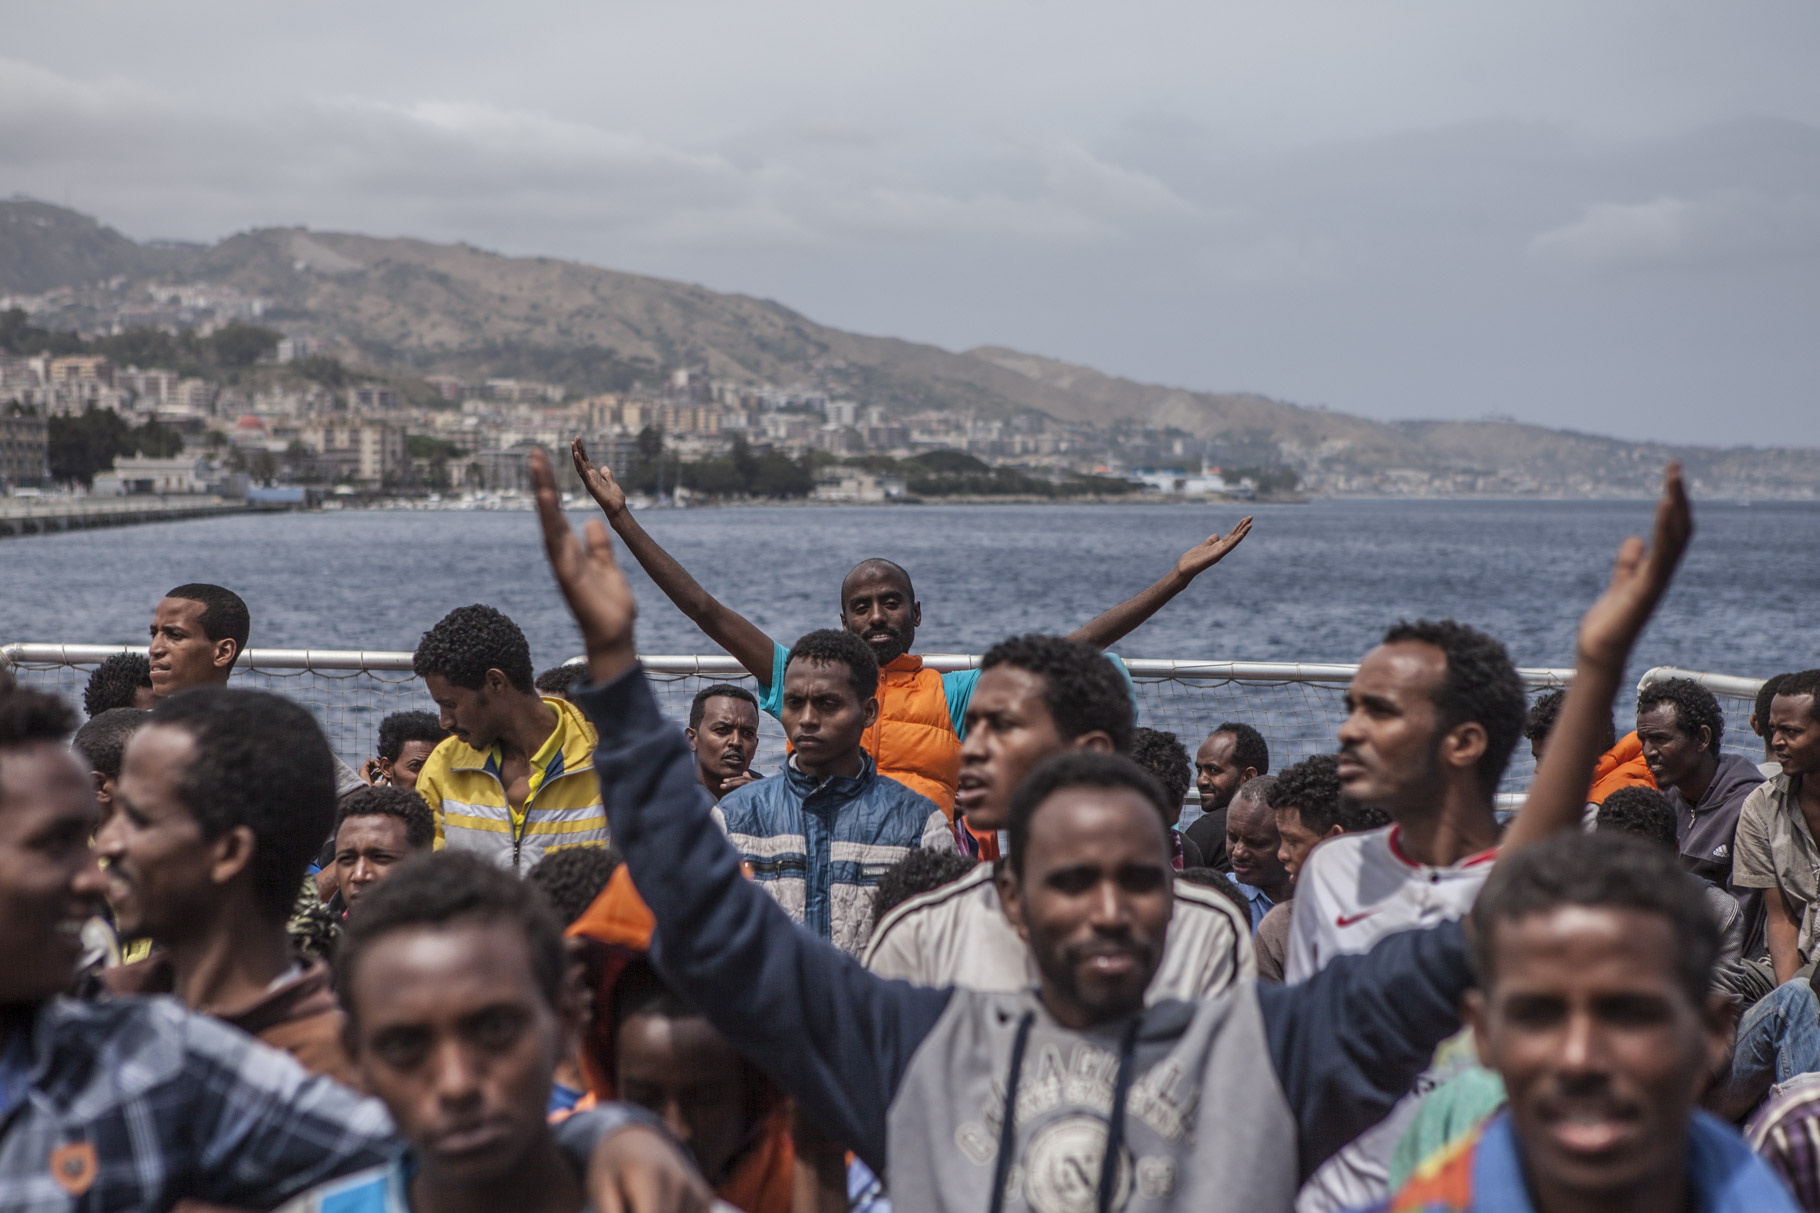 Migrant rescues in the Mediterranean